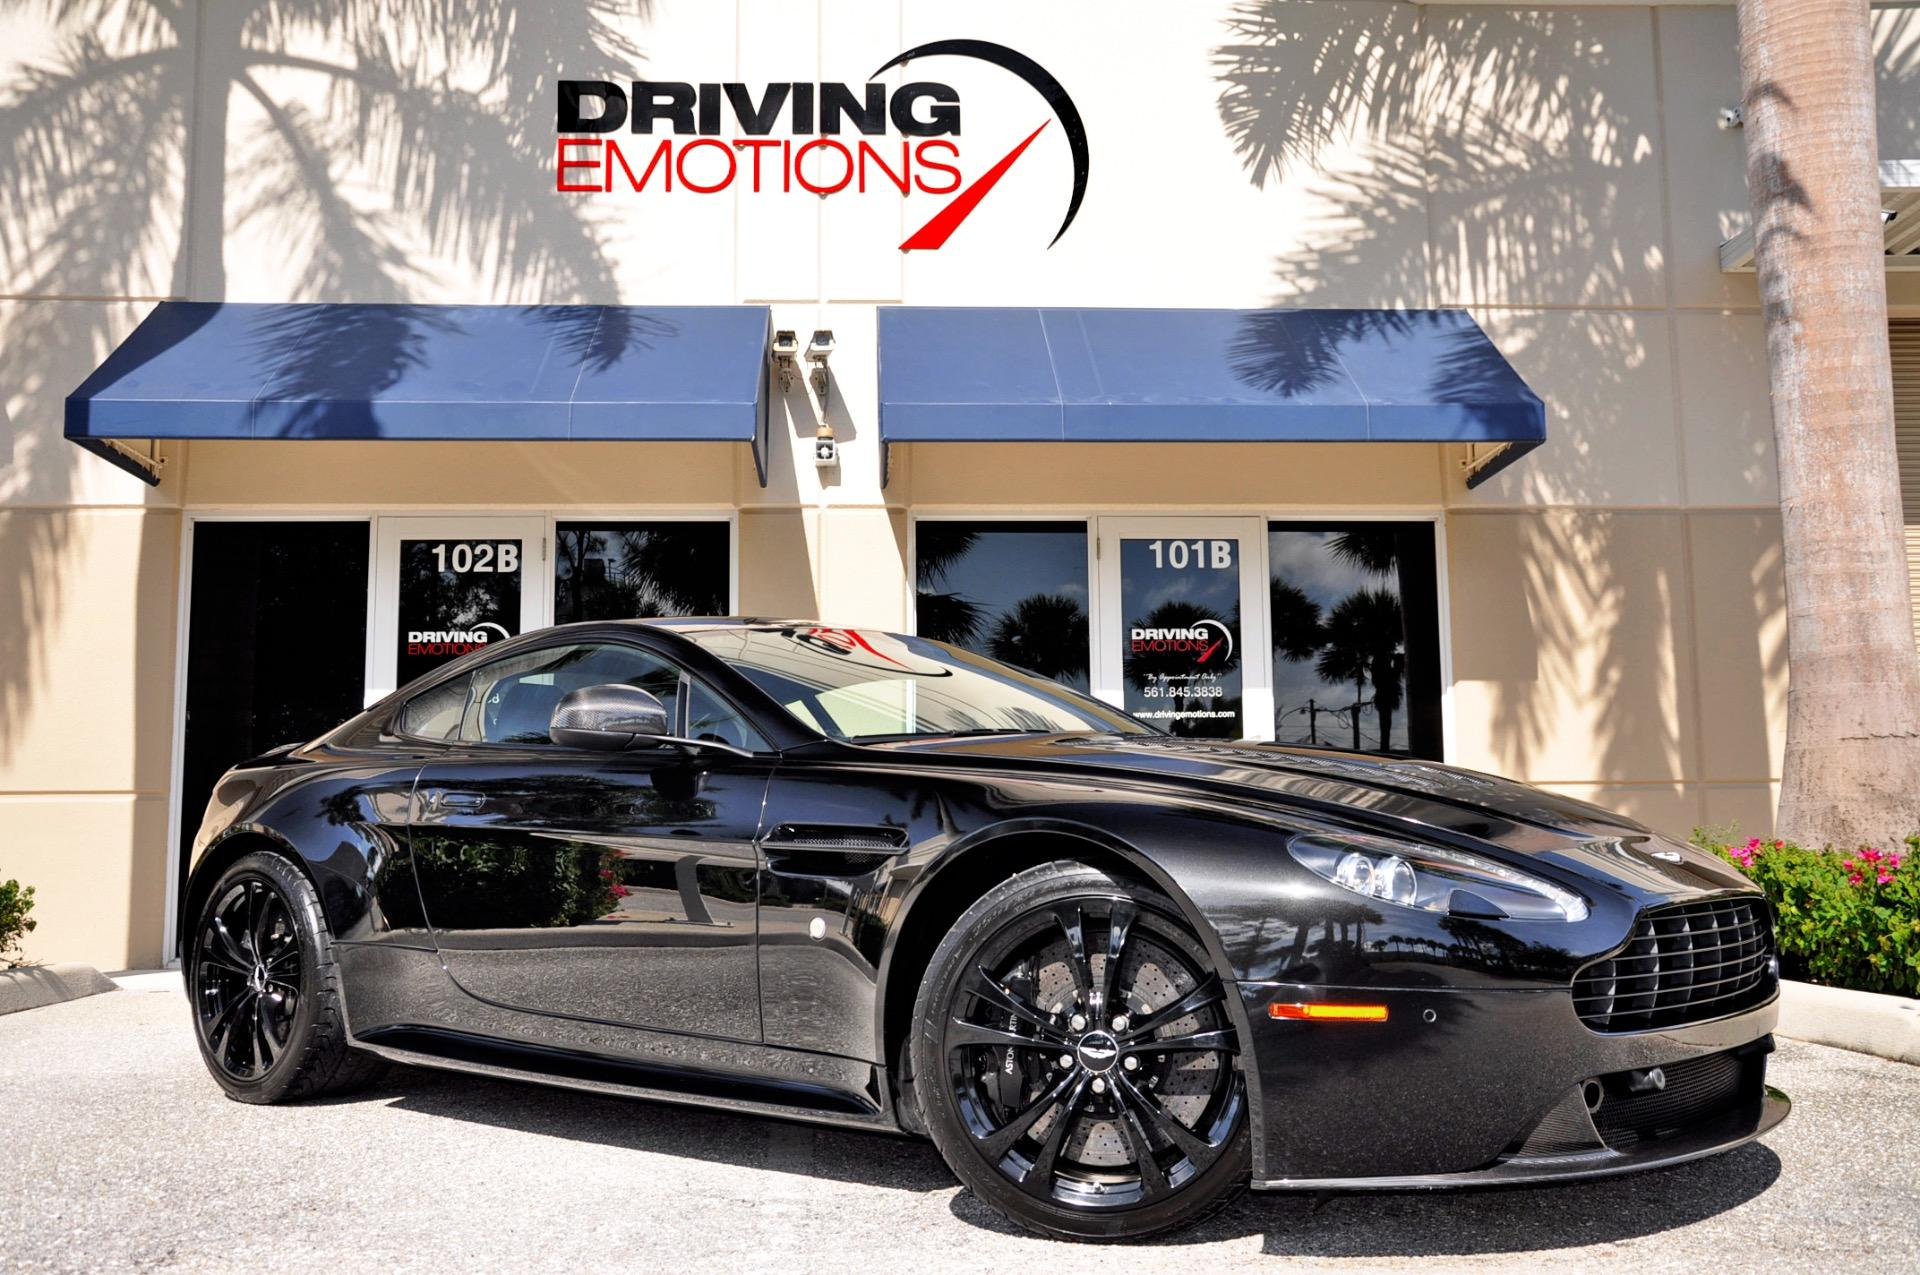 Aston Martin V Vantage V Carbon Black Stock For Sale - Aston martin dealership florida